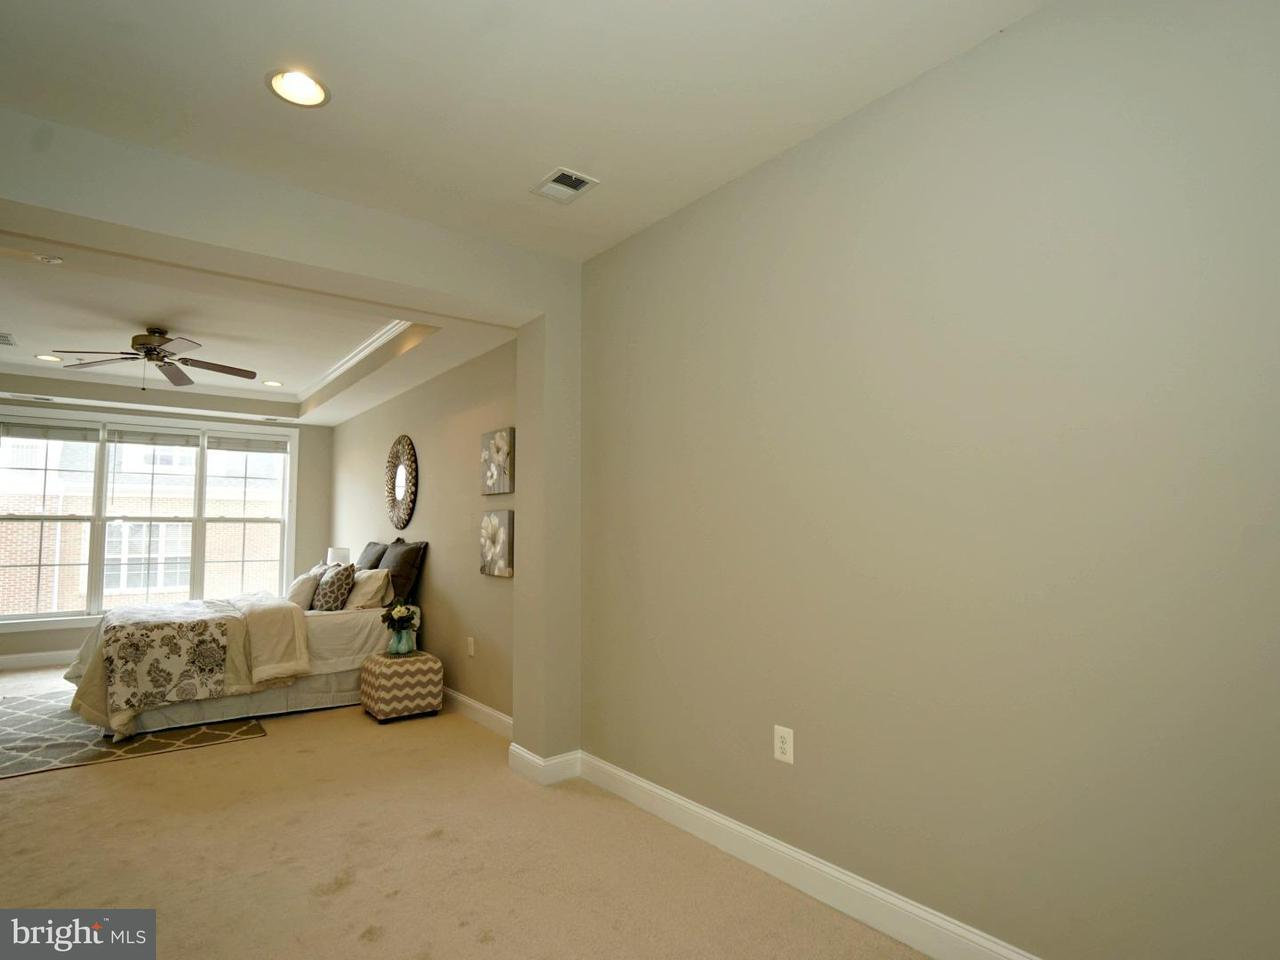 Additional photo for property listing at 232 Herndon Station Sq 232 Herndon Station Sq Herndon, Virginia 20170 Verenigde Staten